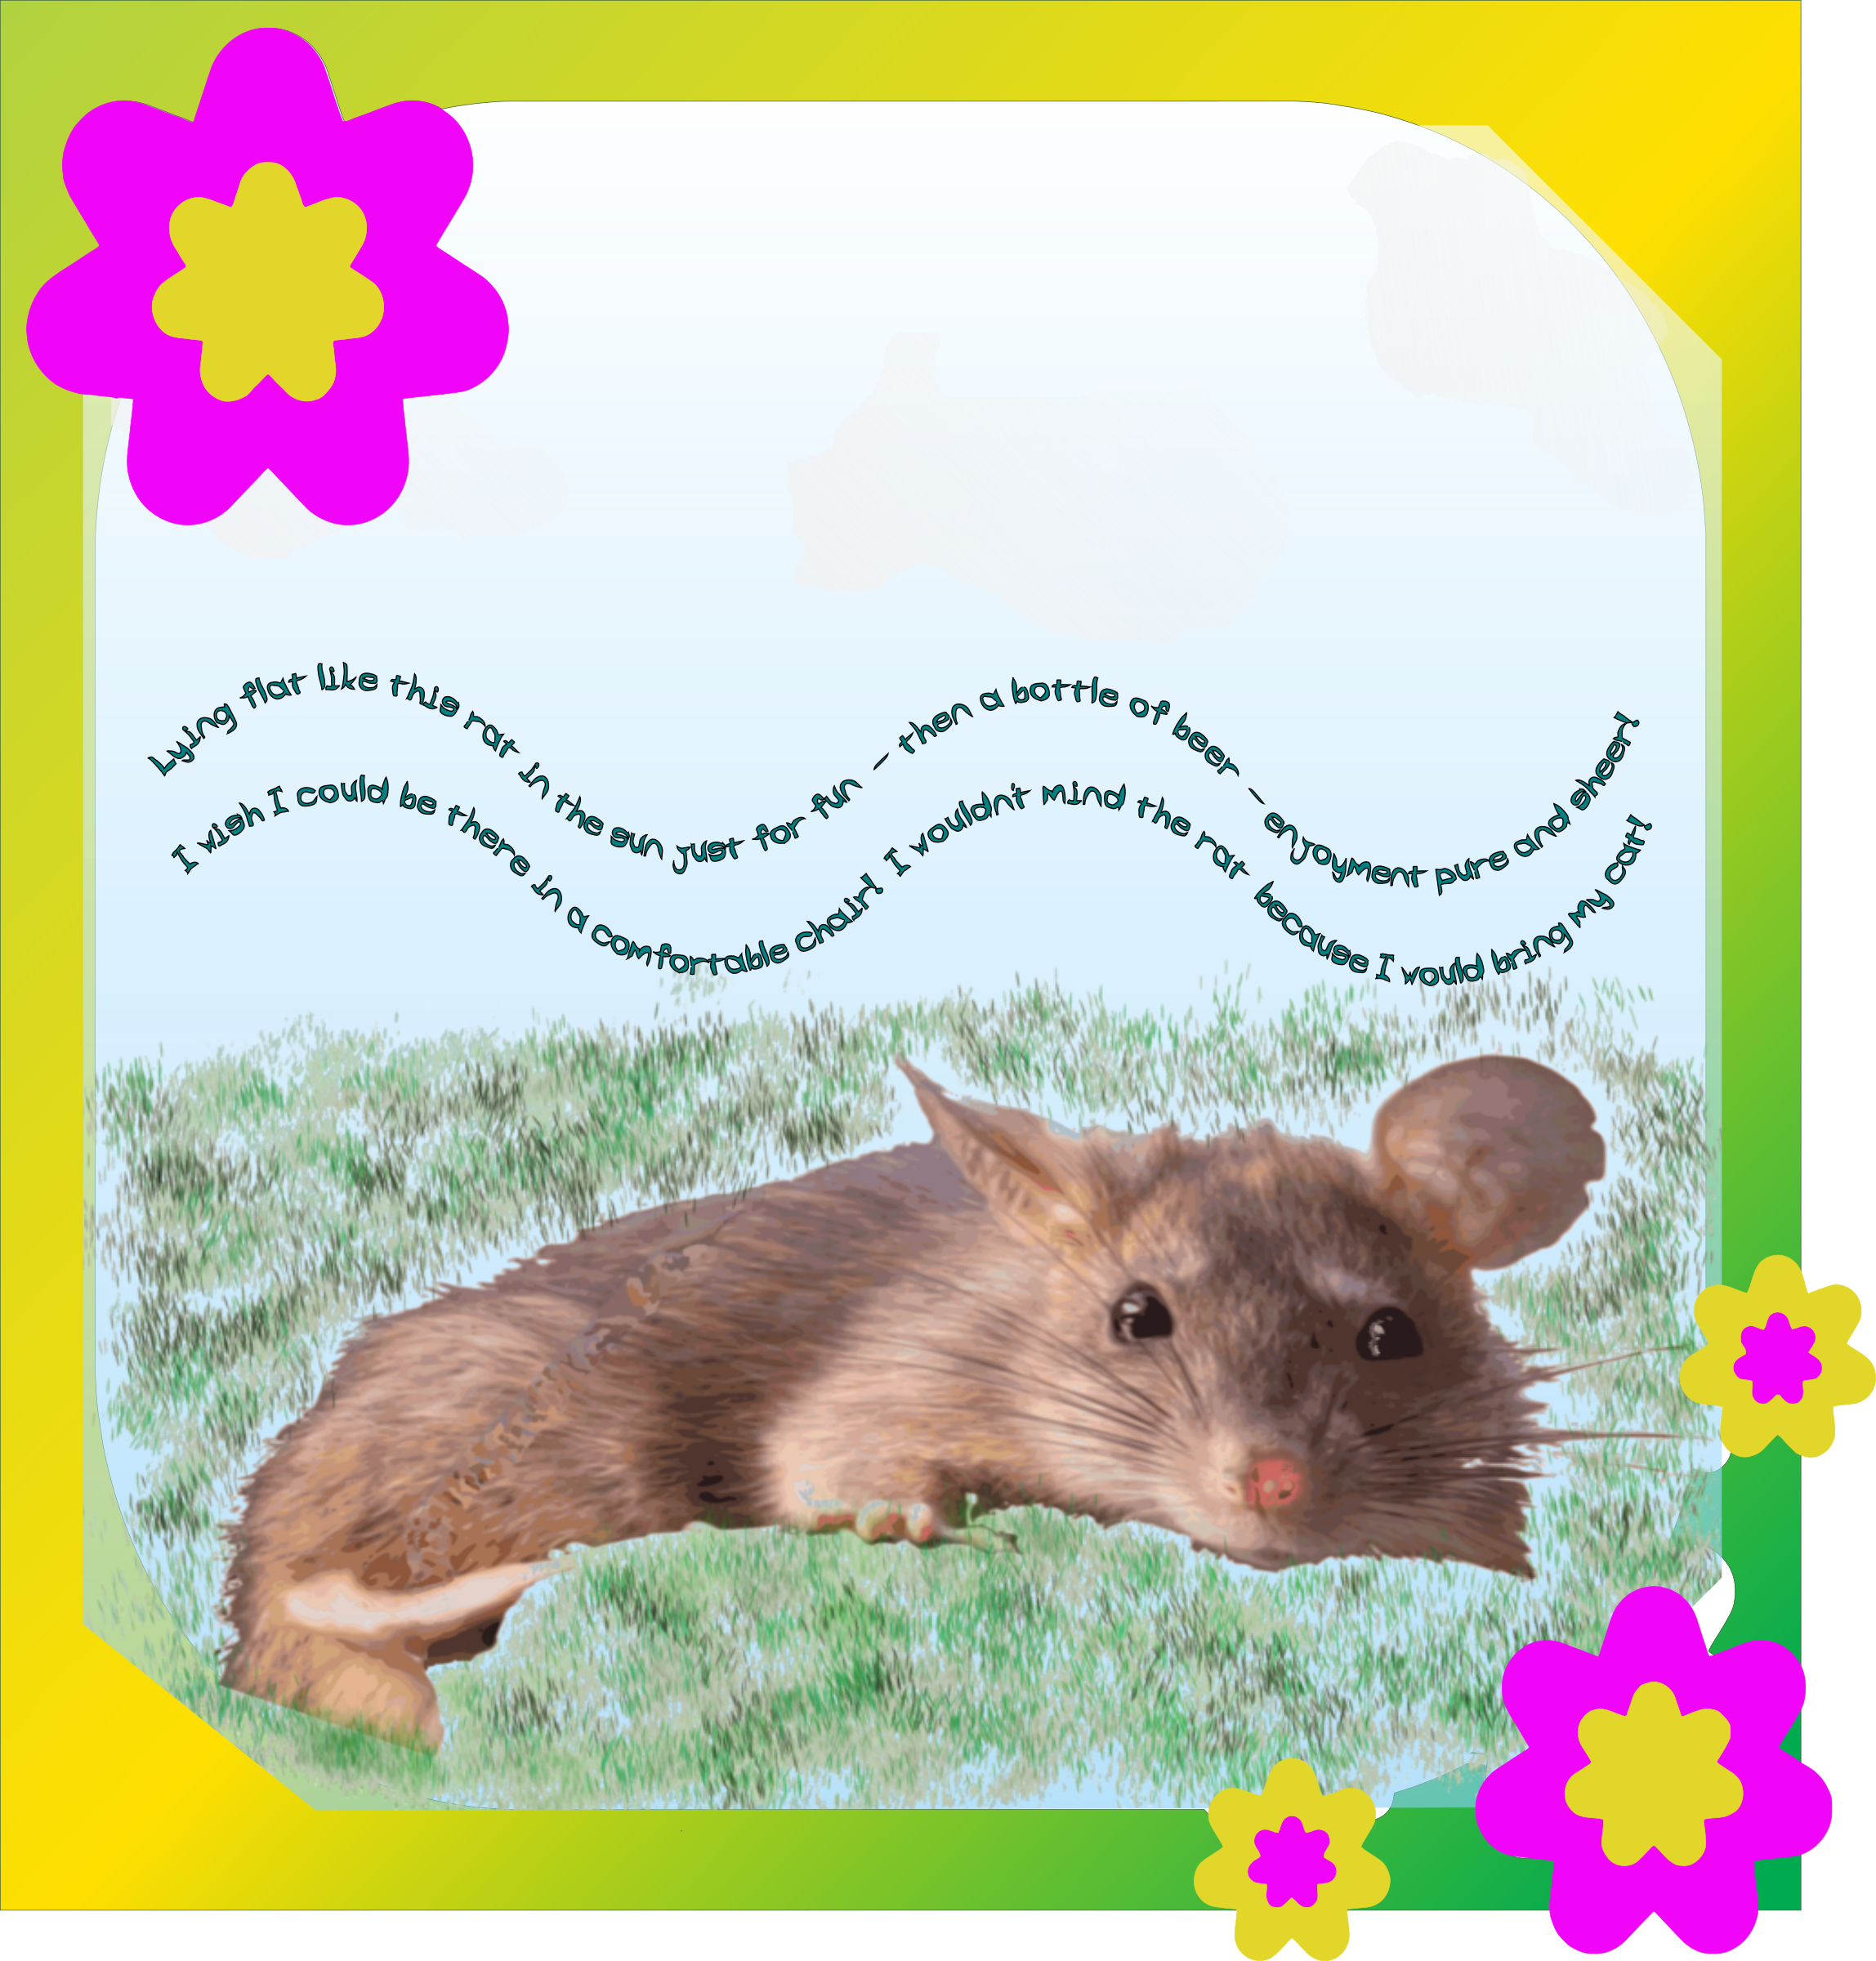 Disturbed Rat Idyll Framed by Carmencita1